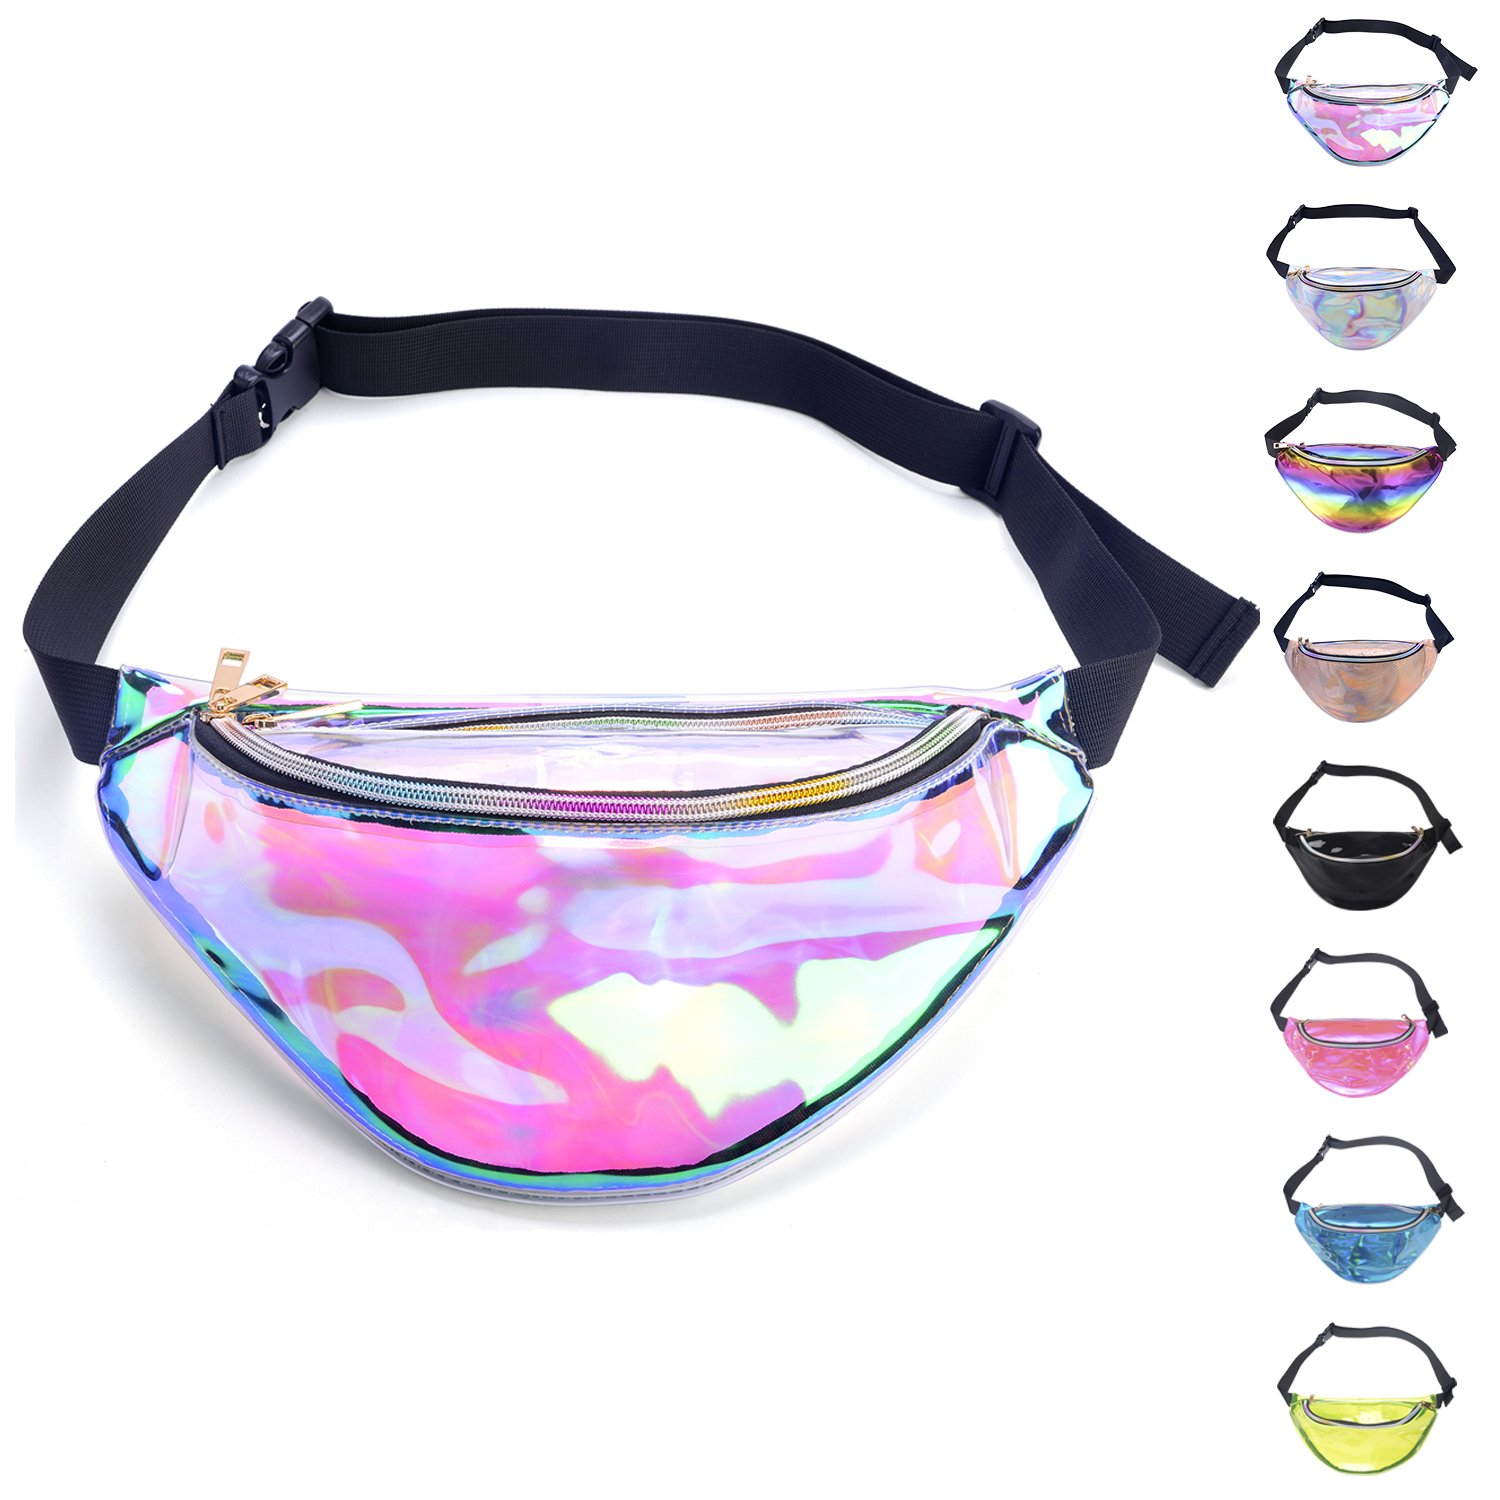 Miracu Holographic Fanny Pack, 80s Fanny Packs For Women And Men, Shiny Waist Pack Bum Bag Fashion For Rave, Festival, Party, Travel by Miracu